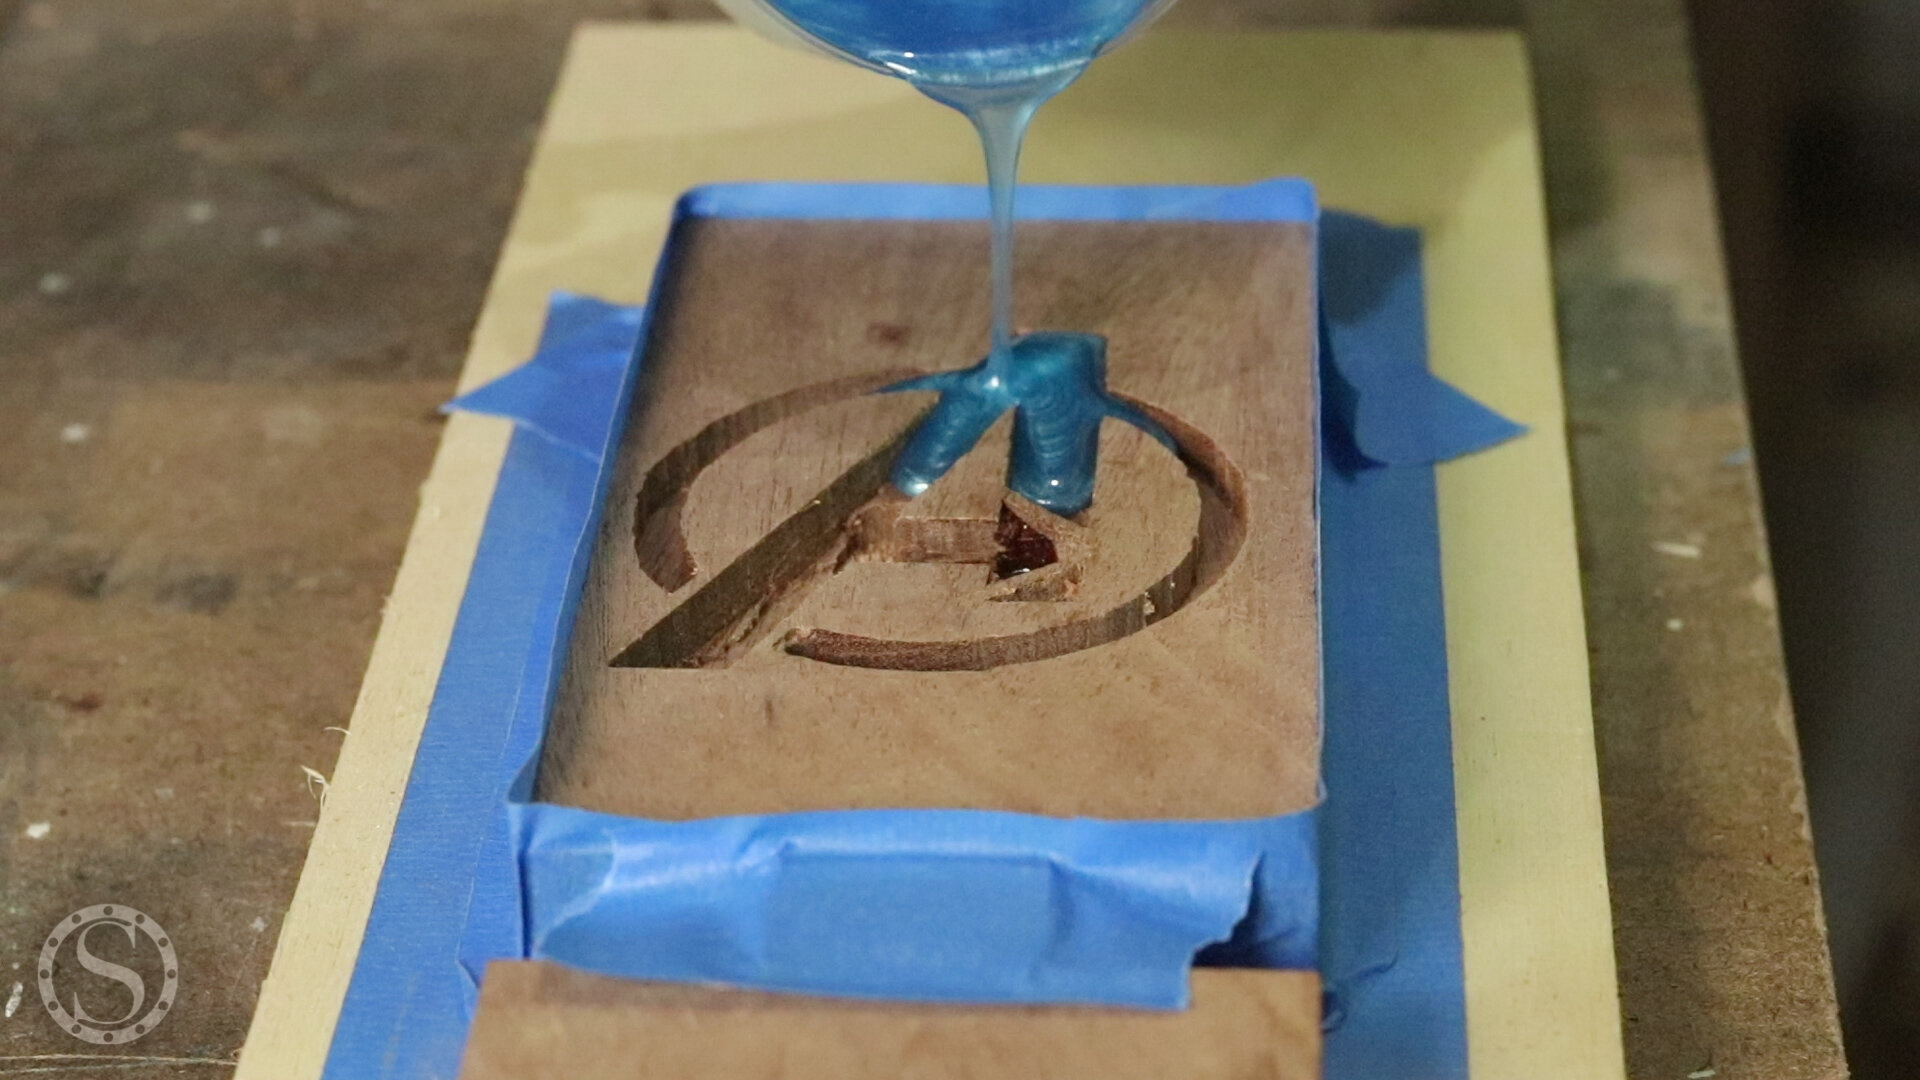 Avengers Phone Holder - Starting the Epoxy Pour from the top with light blue